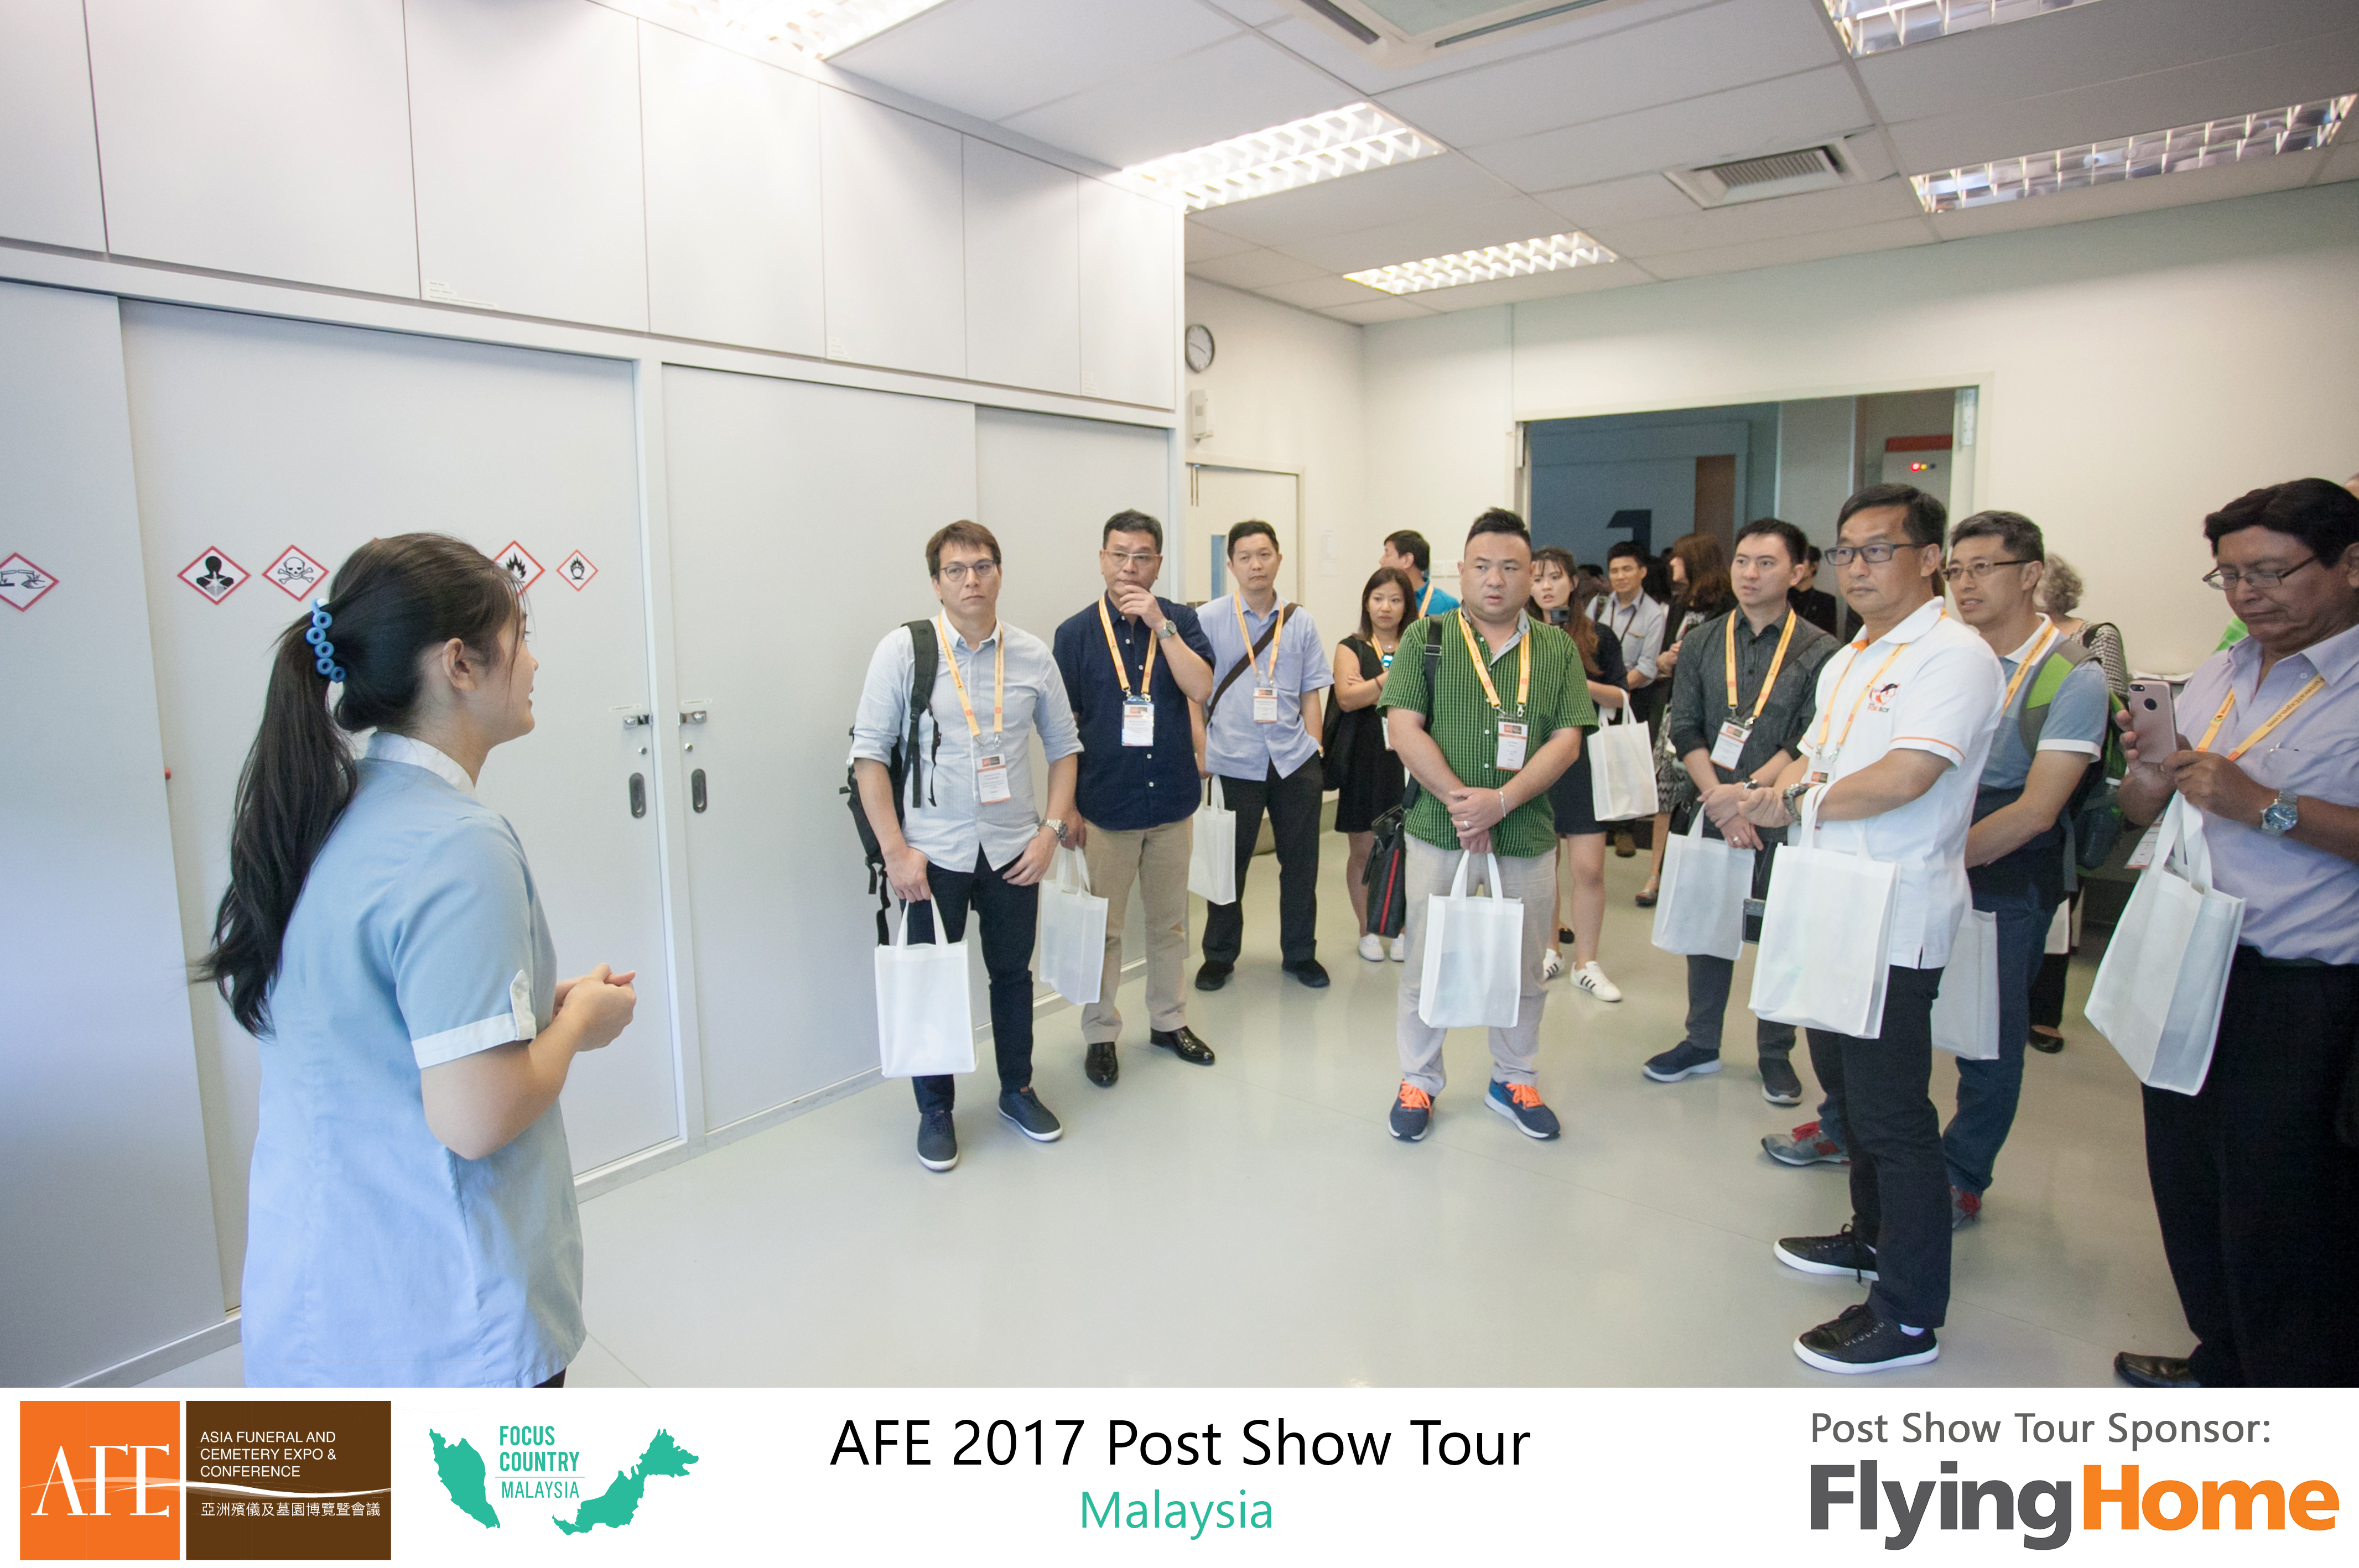 AFE Post Show Tour 2017 Day 3 -33